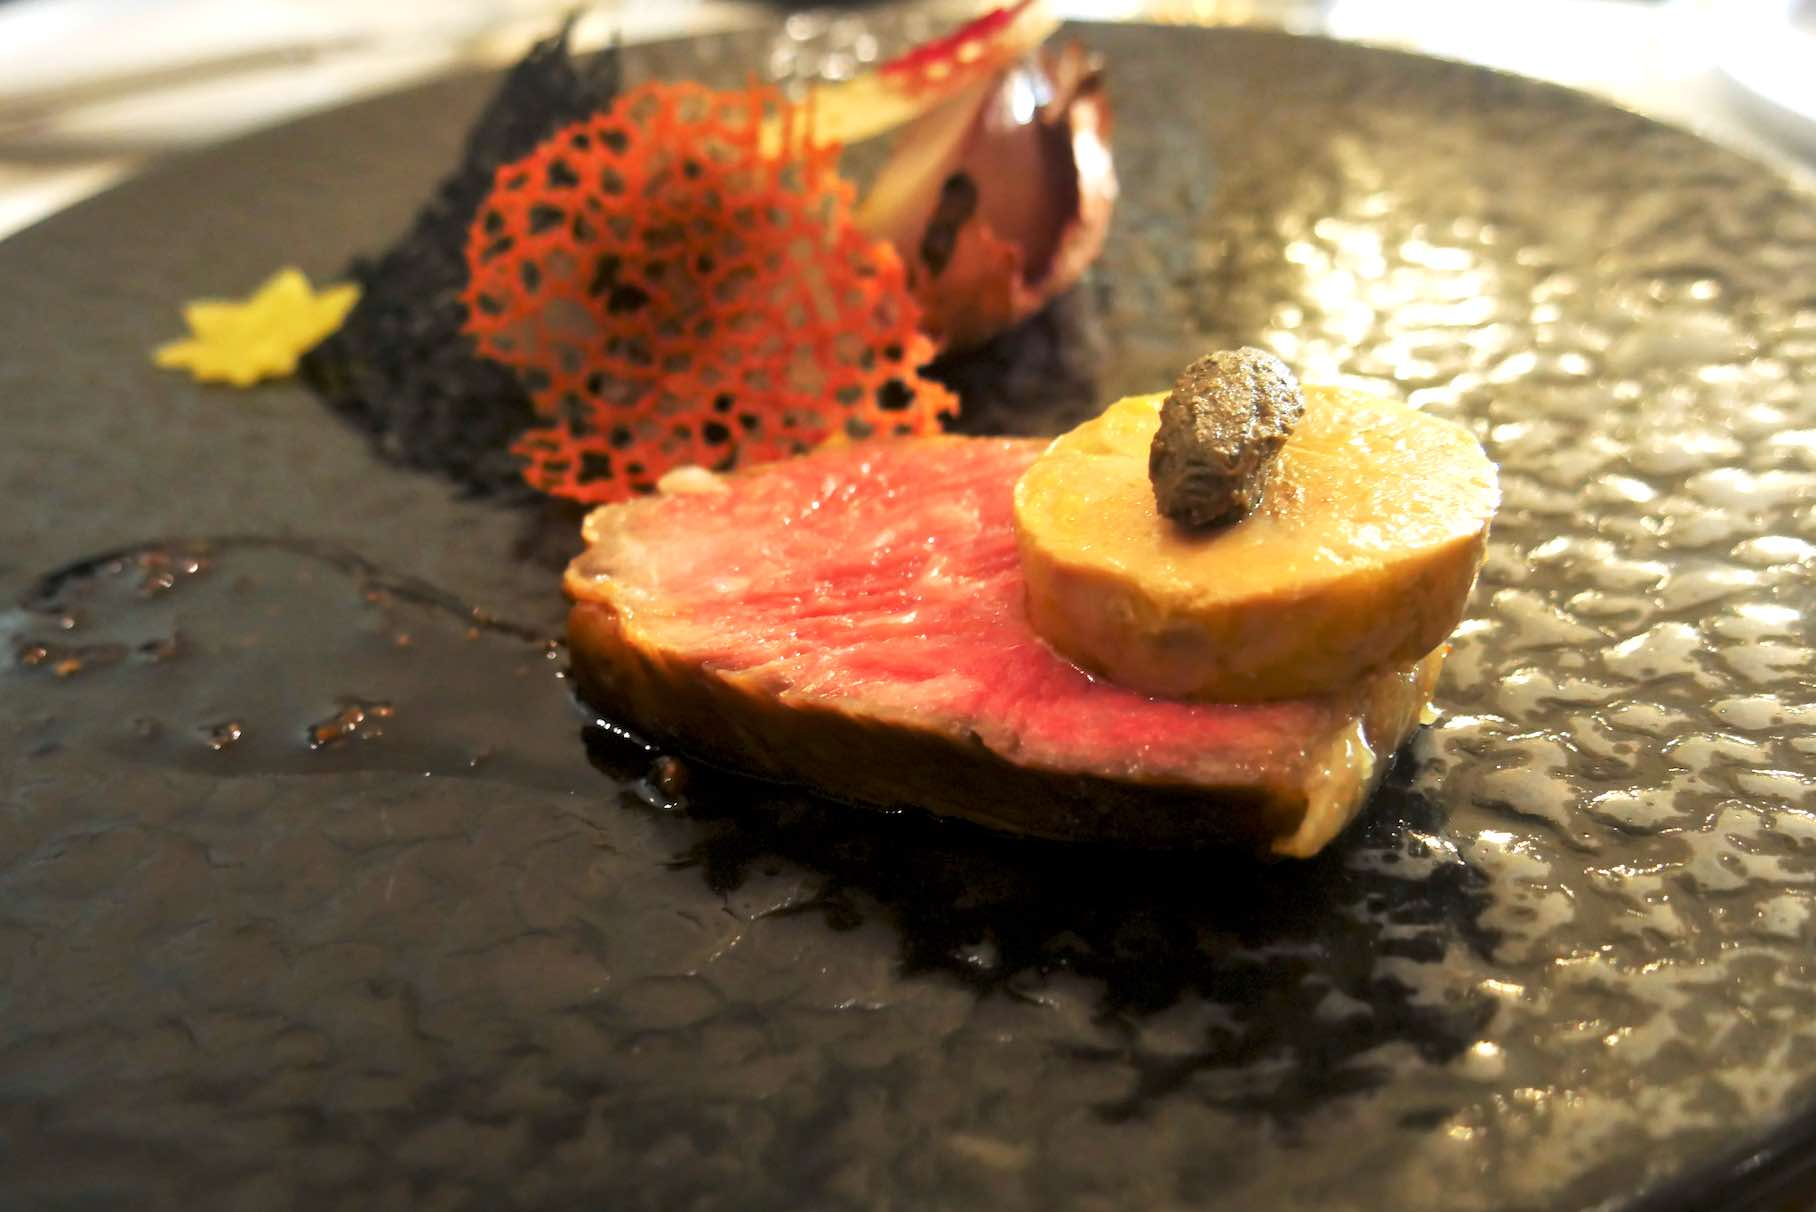 lewin-terrace-japanese-wagyu-steak-nippon-rossini-style-aspirantsg